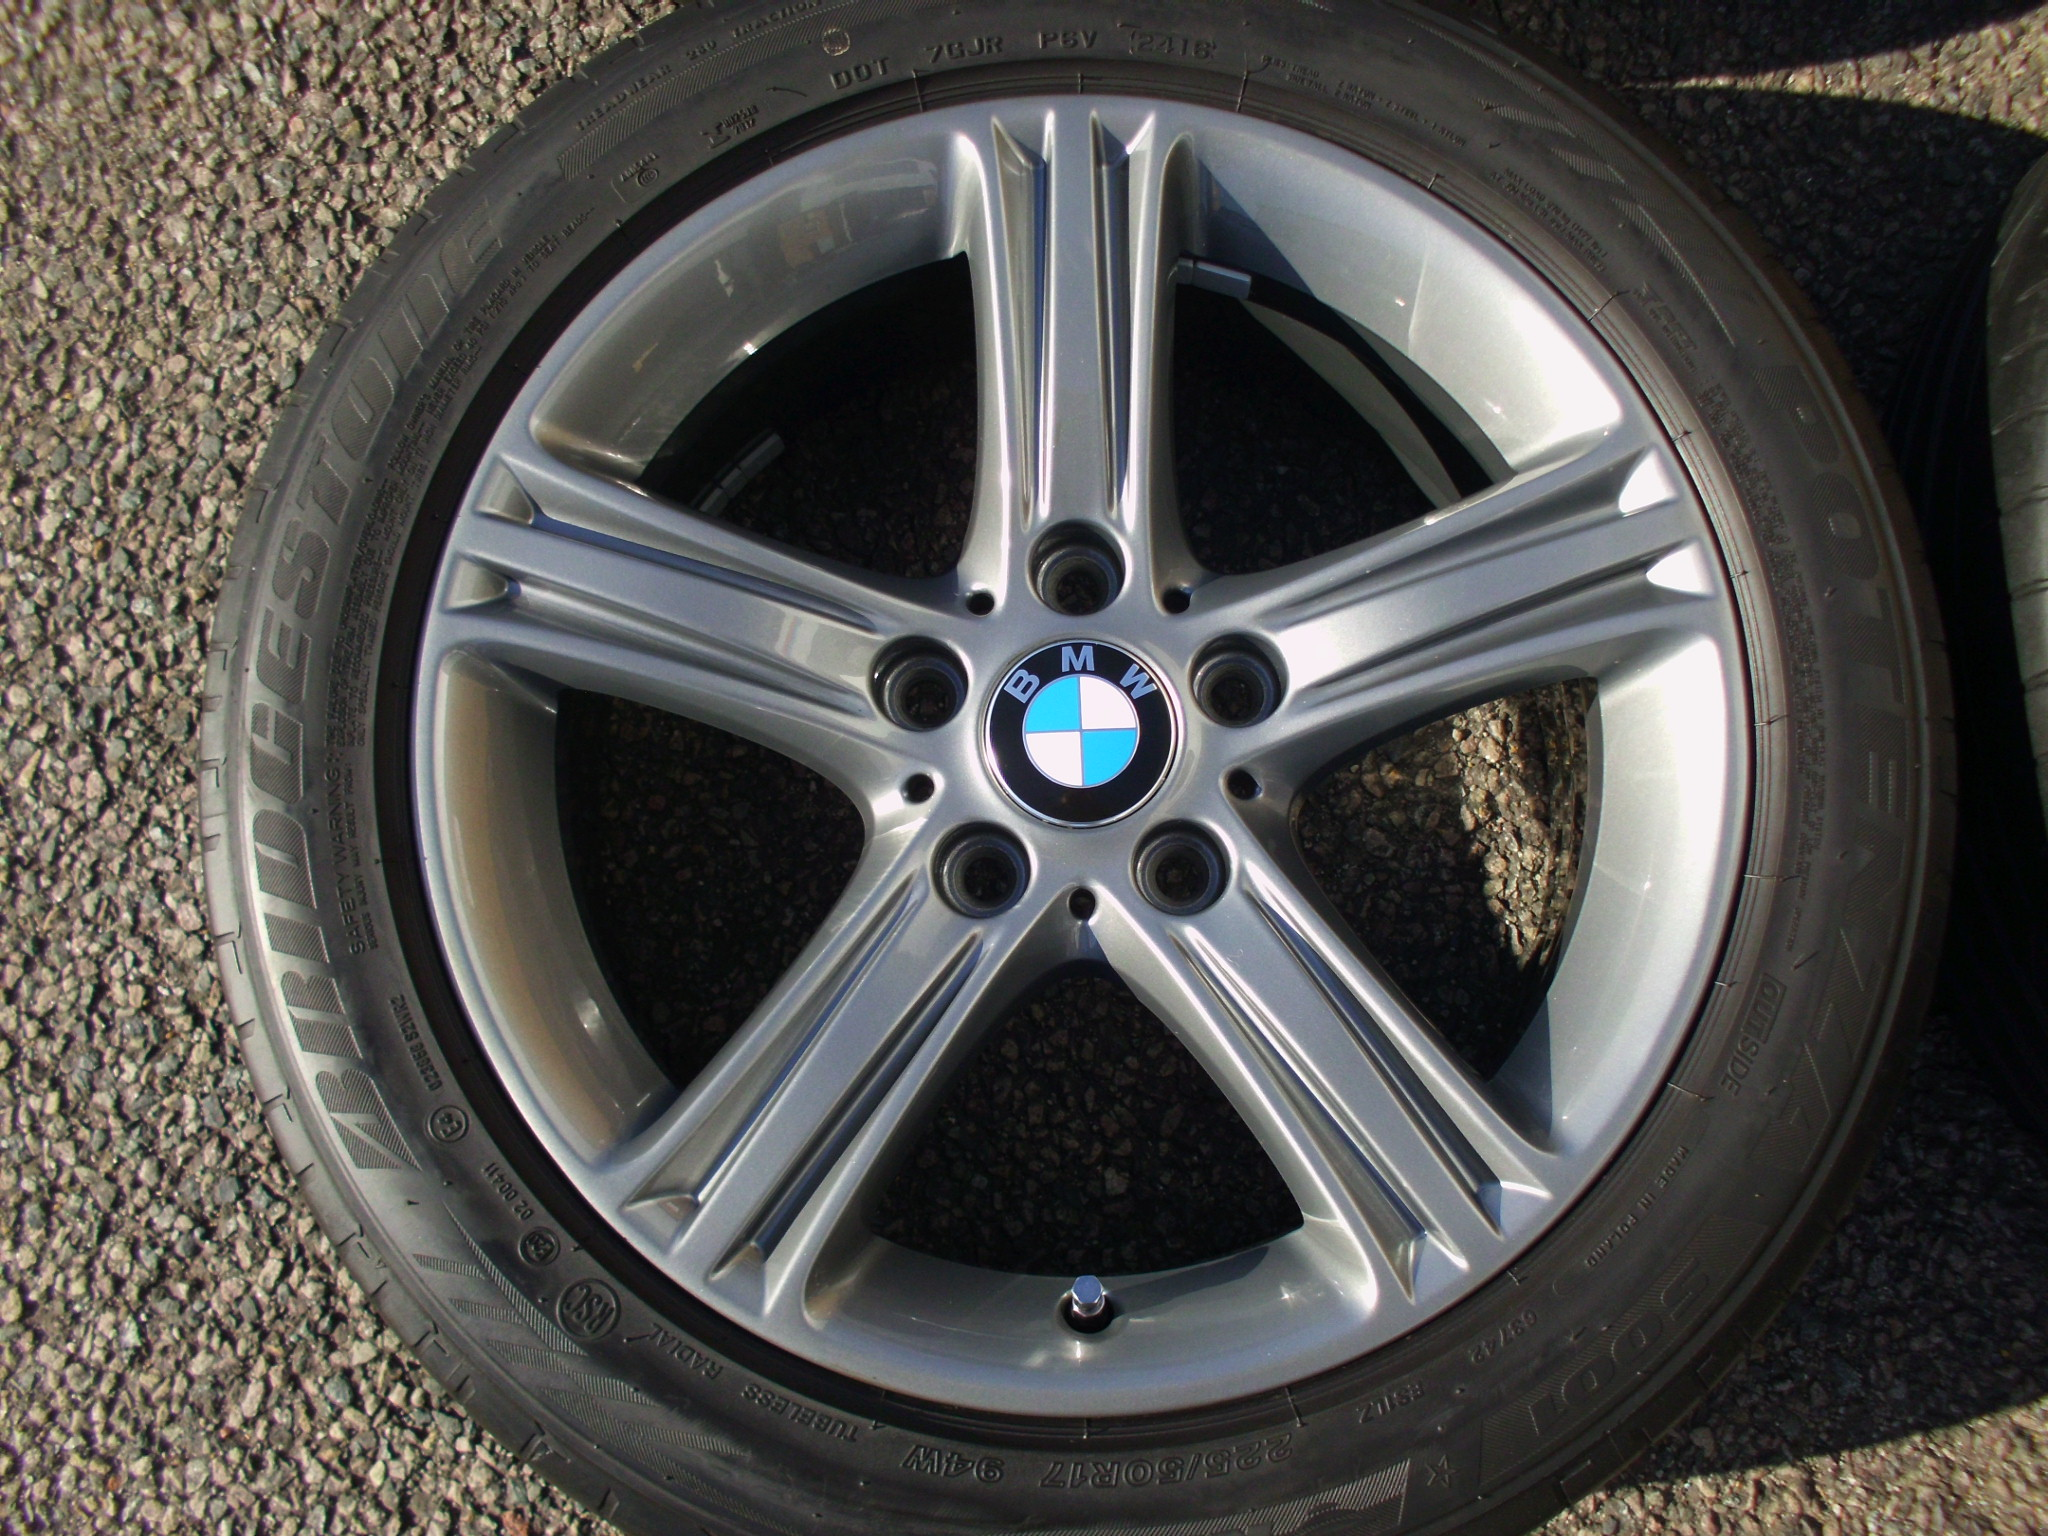 "USED 17"" GENUINE BMW STYLE 393 F30 5 SPOKE ALLOY WHEELS,FULLY REFURBED IN GUNMETAL, INC BRIDGESTONE RUNFLATS"